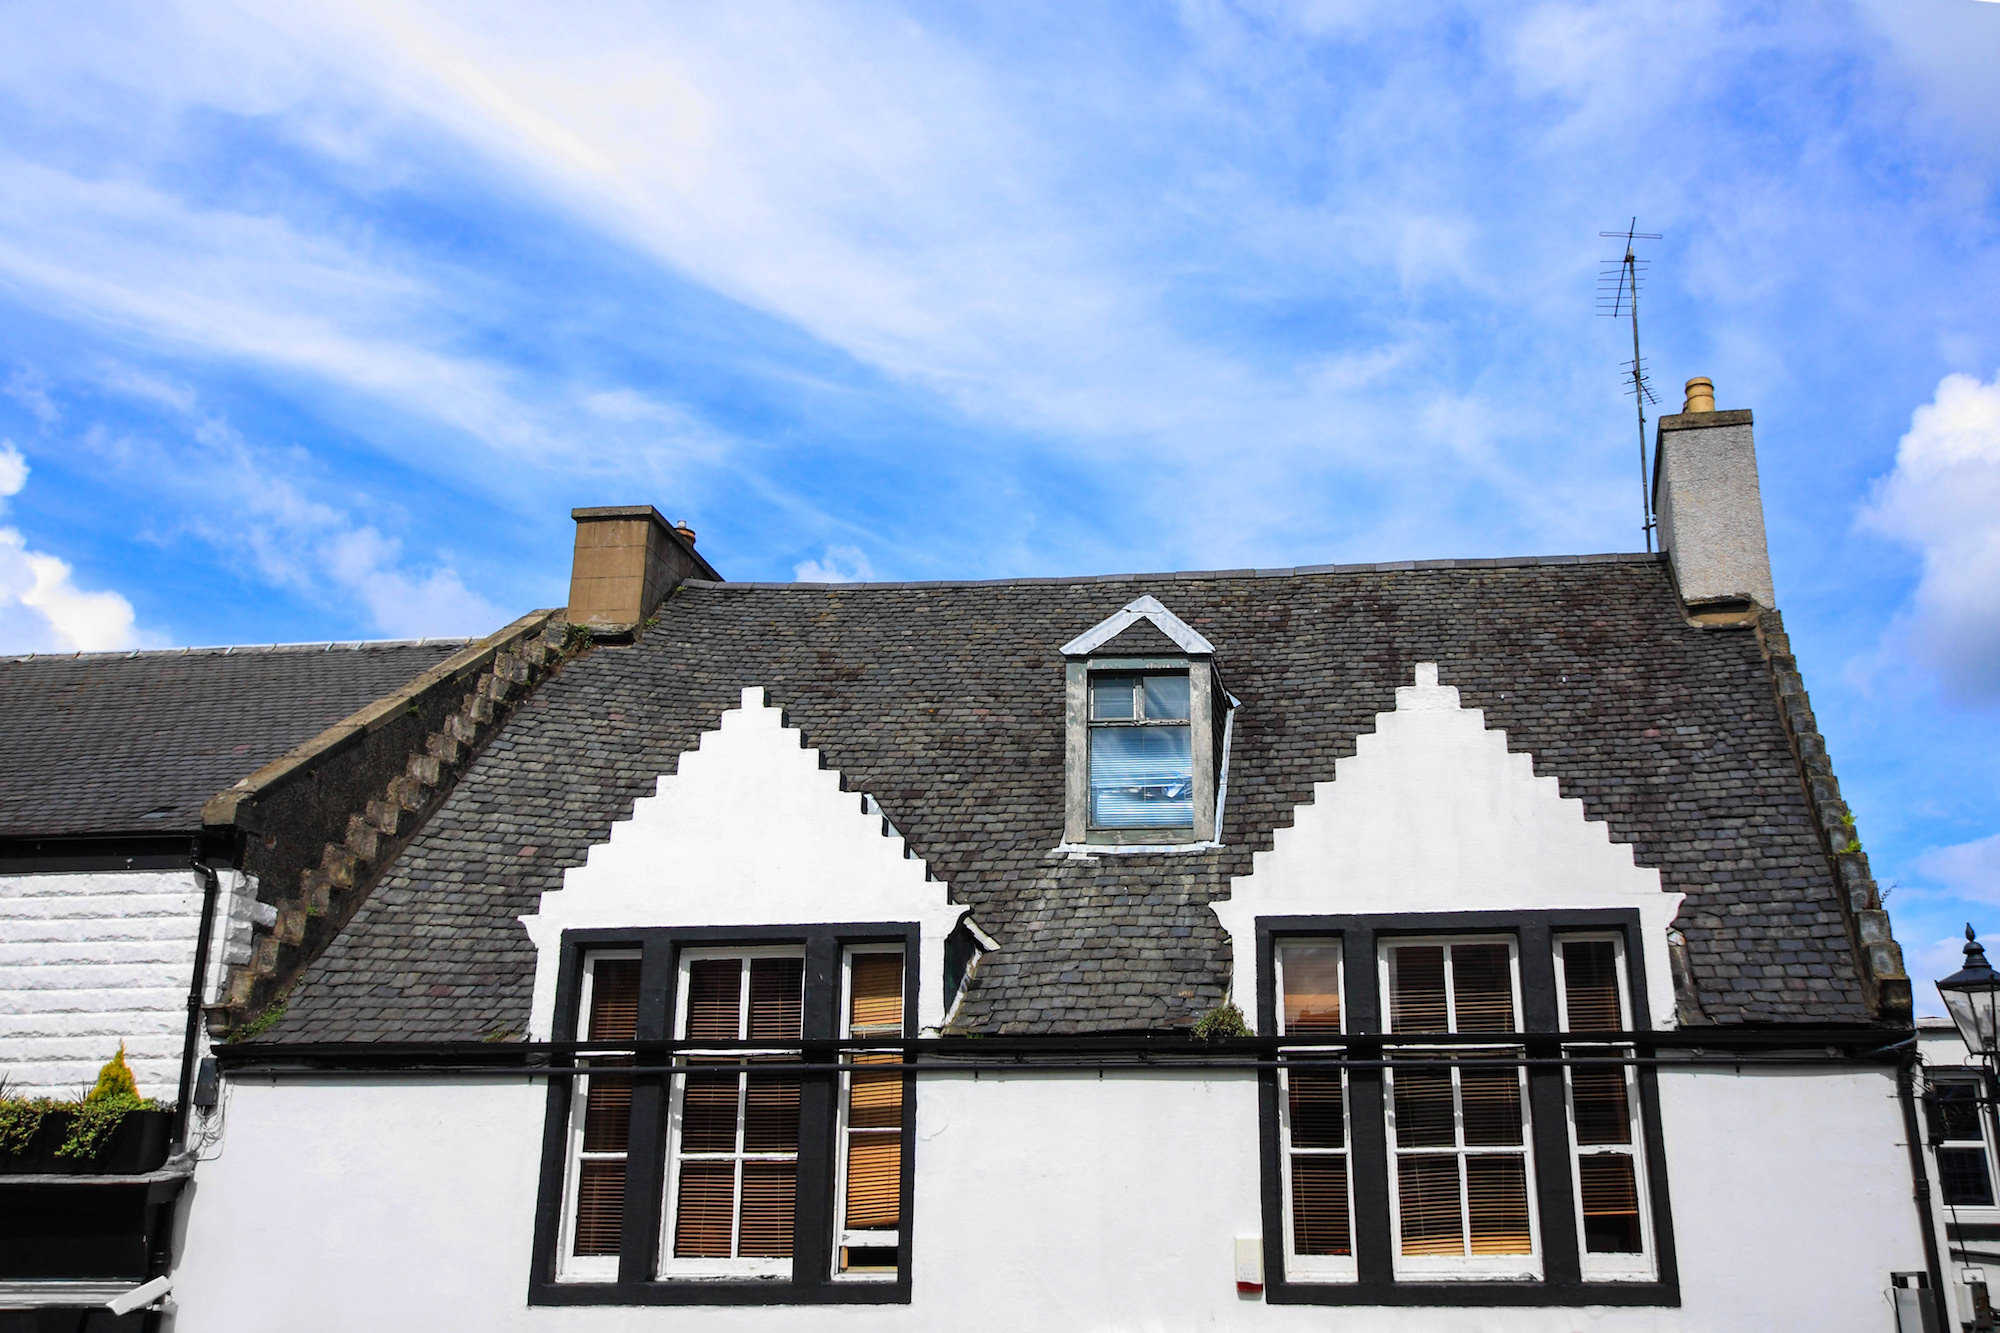 a picture of a house with a big cast iron guttering system installed